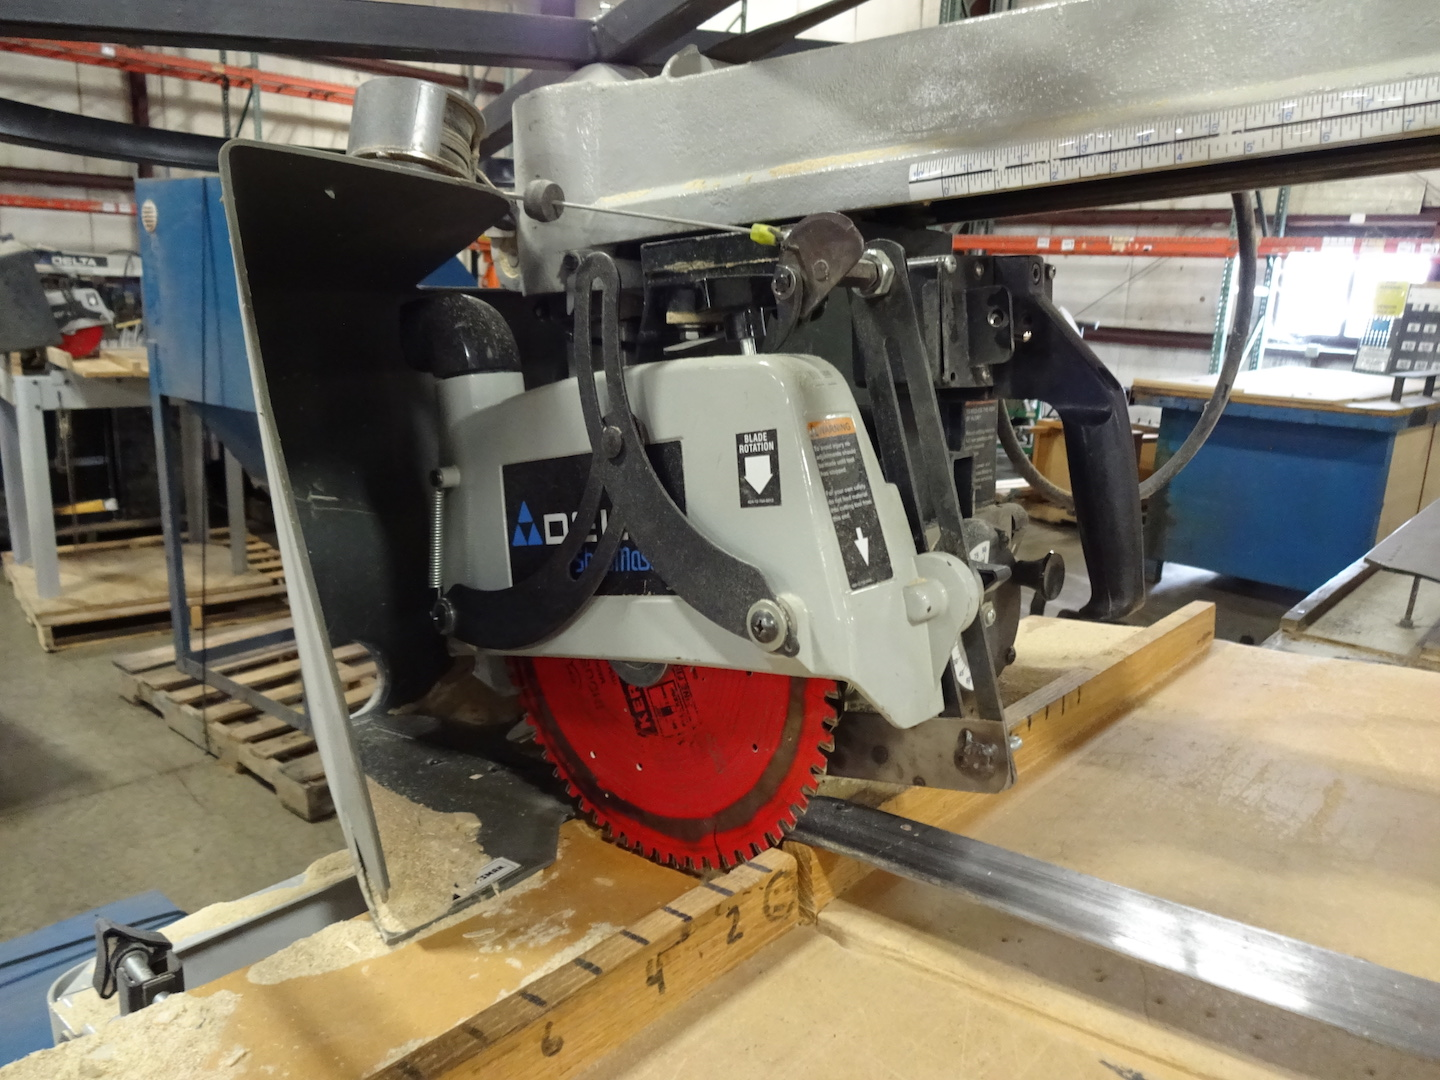 Delta 1-1/2 HP Radial Arm Cut-off Saw, S/N 04184786, 110 Volt - Image 3 of 3